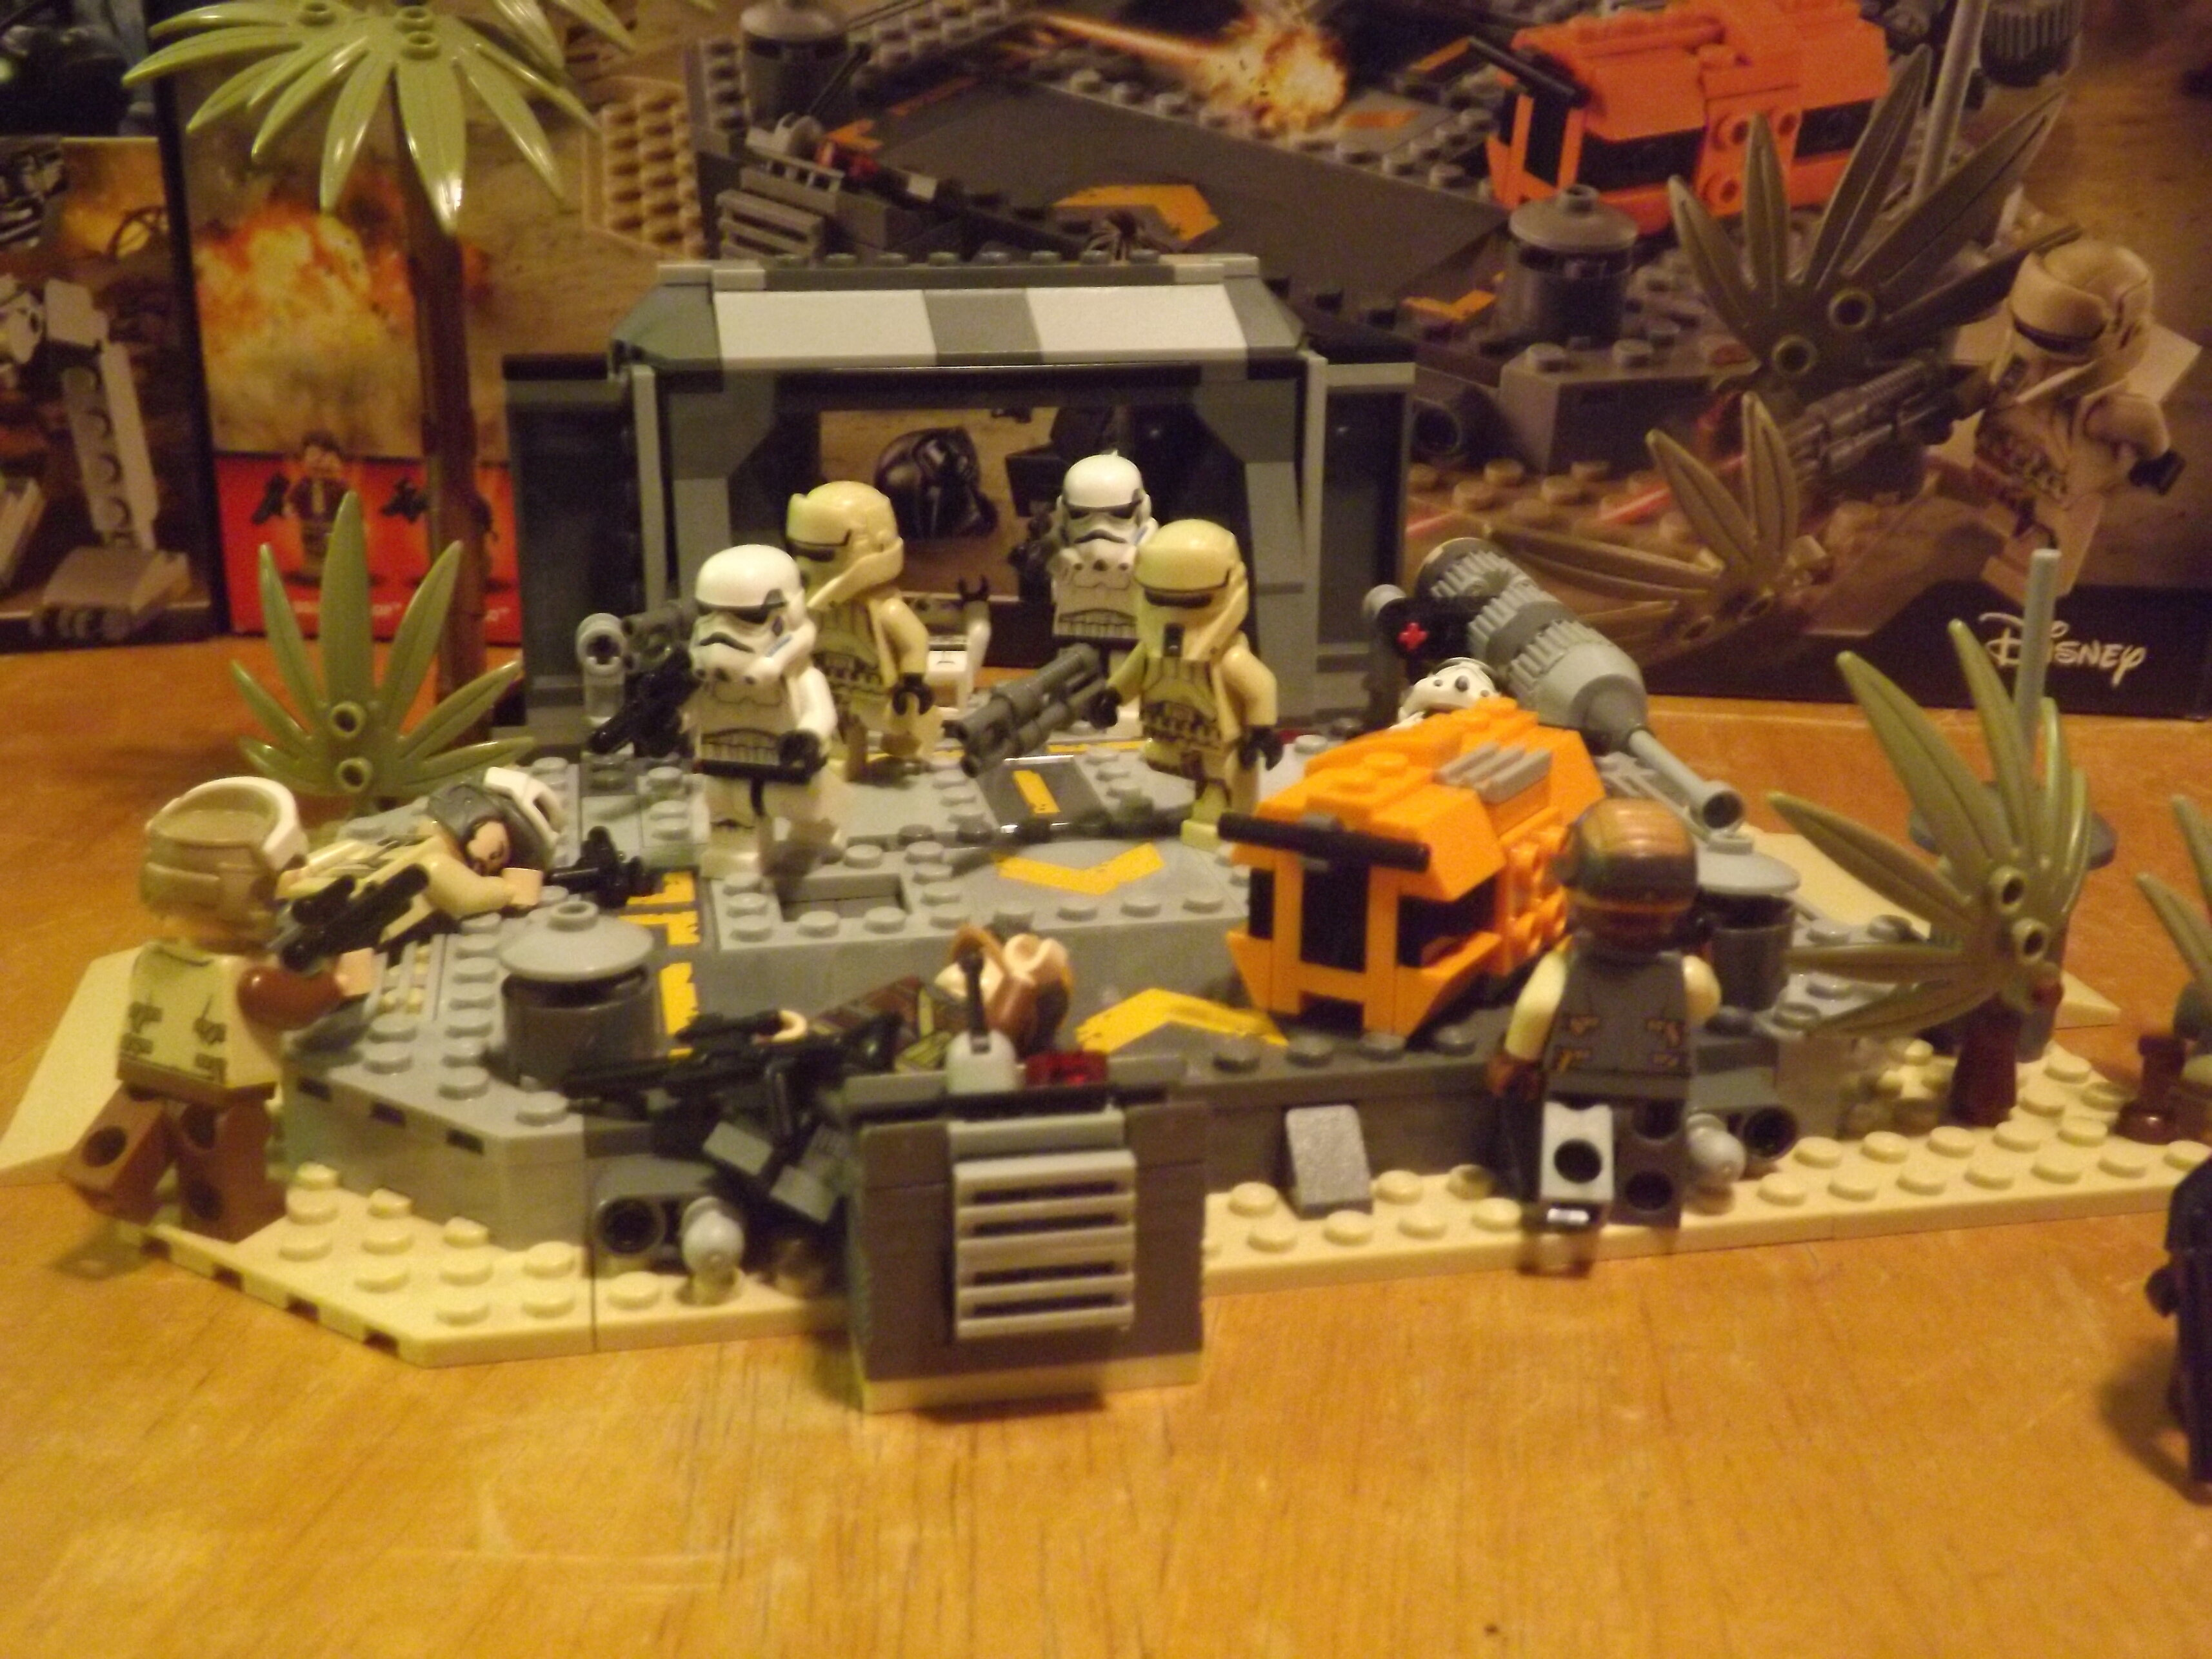 LEGO Star Wars 2017 Rogue One Sets! - Community Reviews